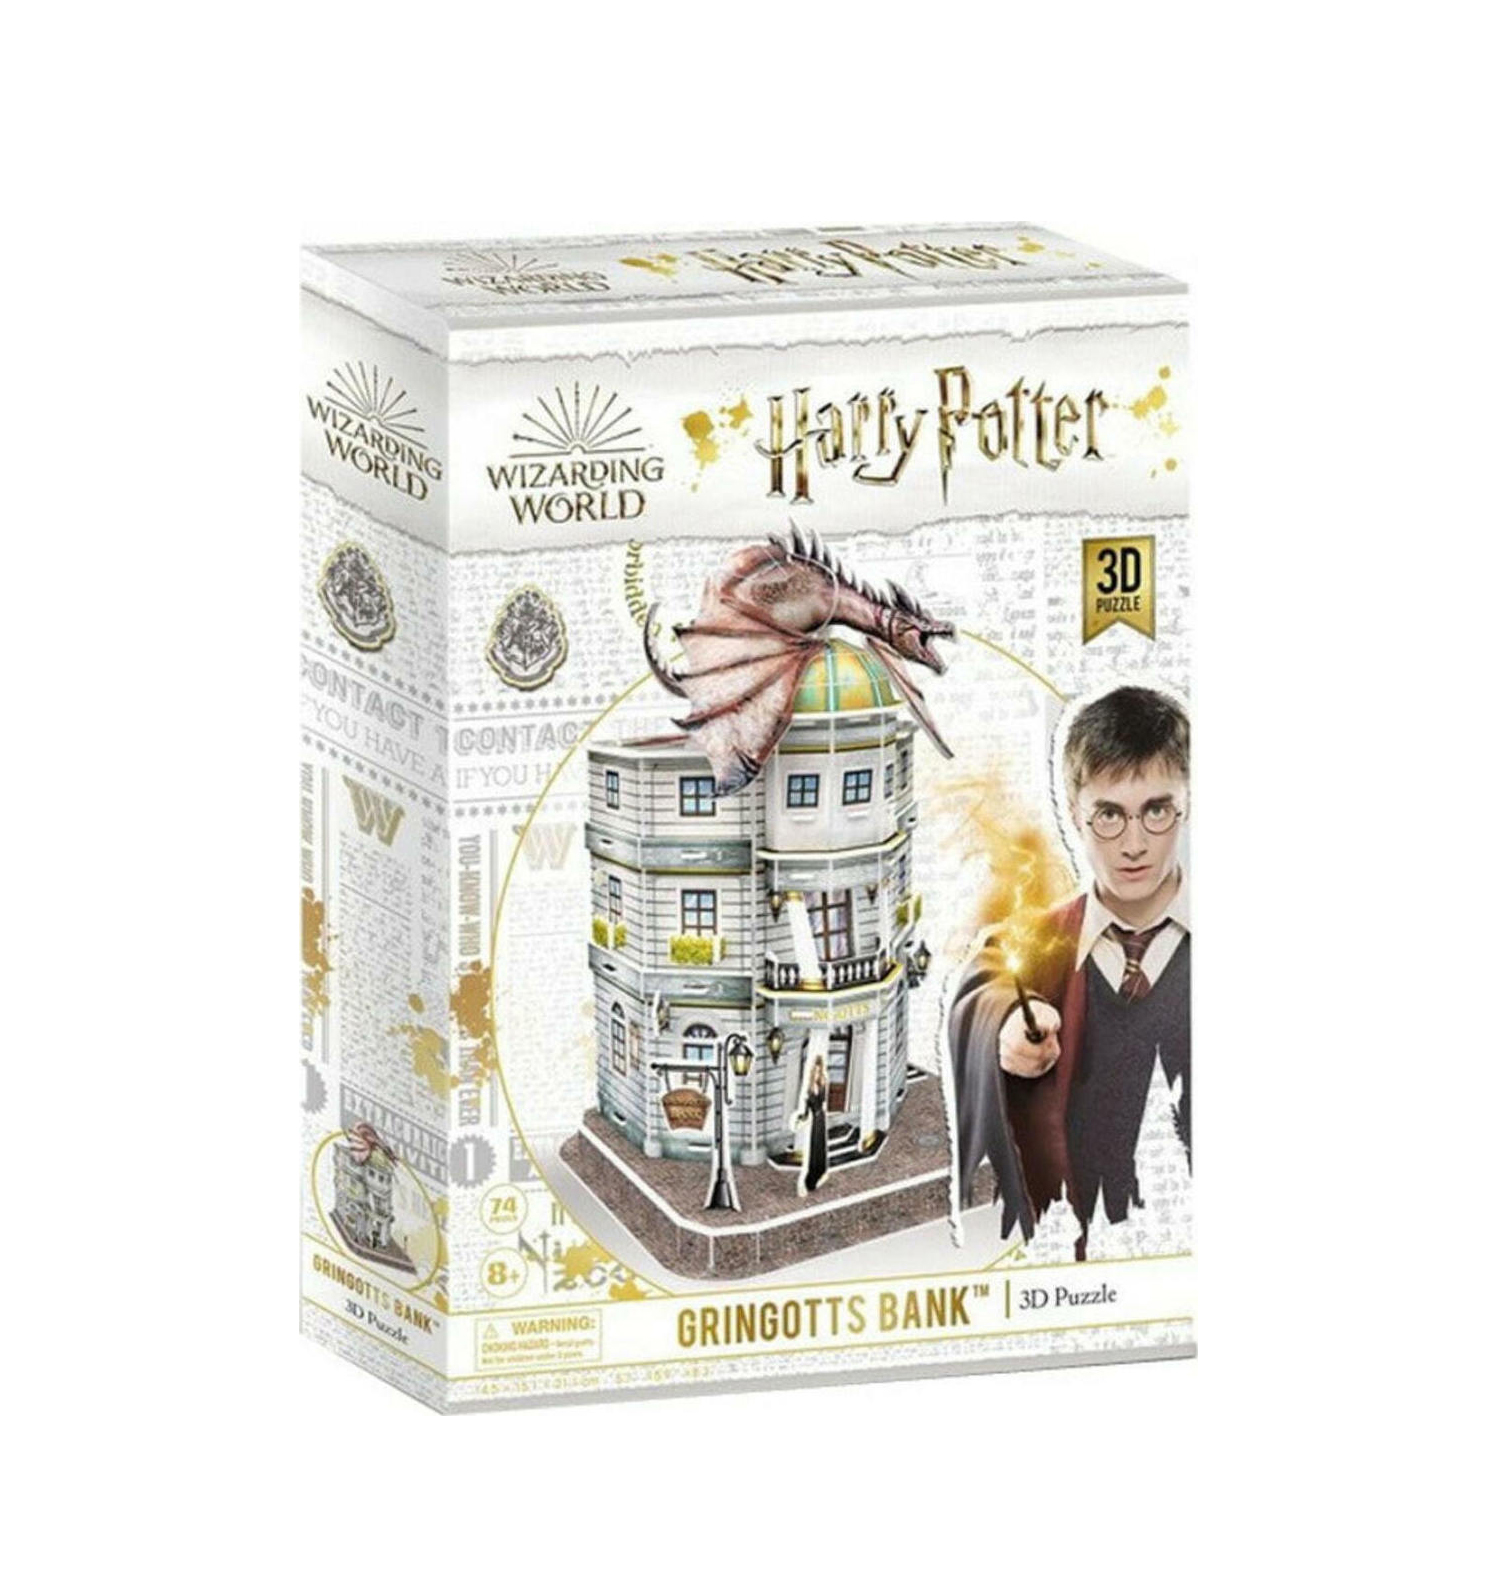 Harry Potter Diagon Alley Gringotts Bank 3D 74pcs DS1005h 420006